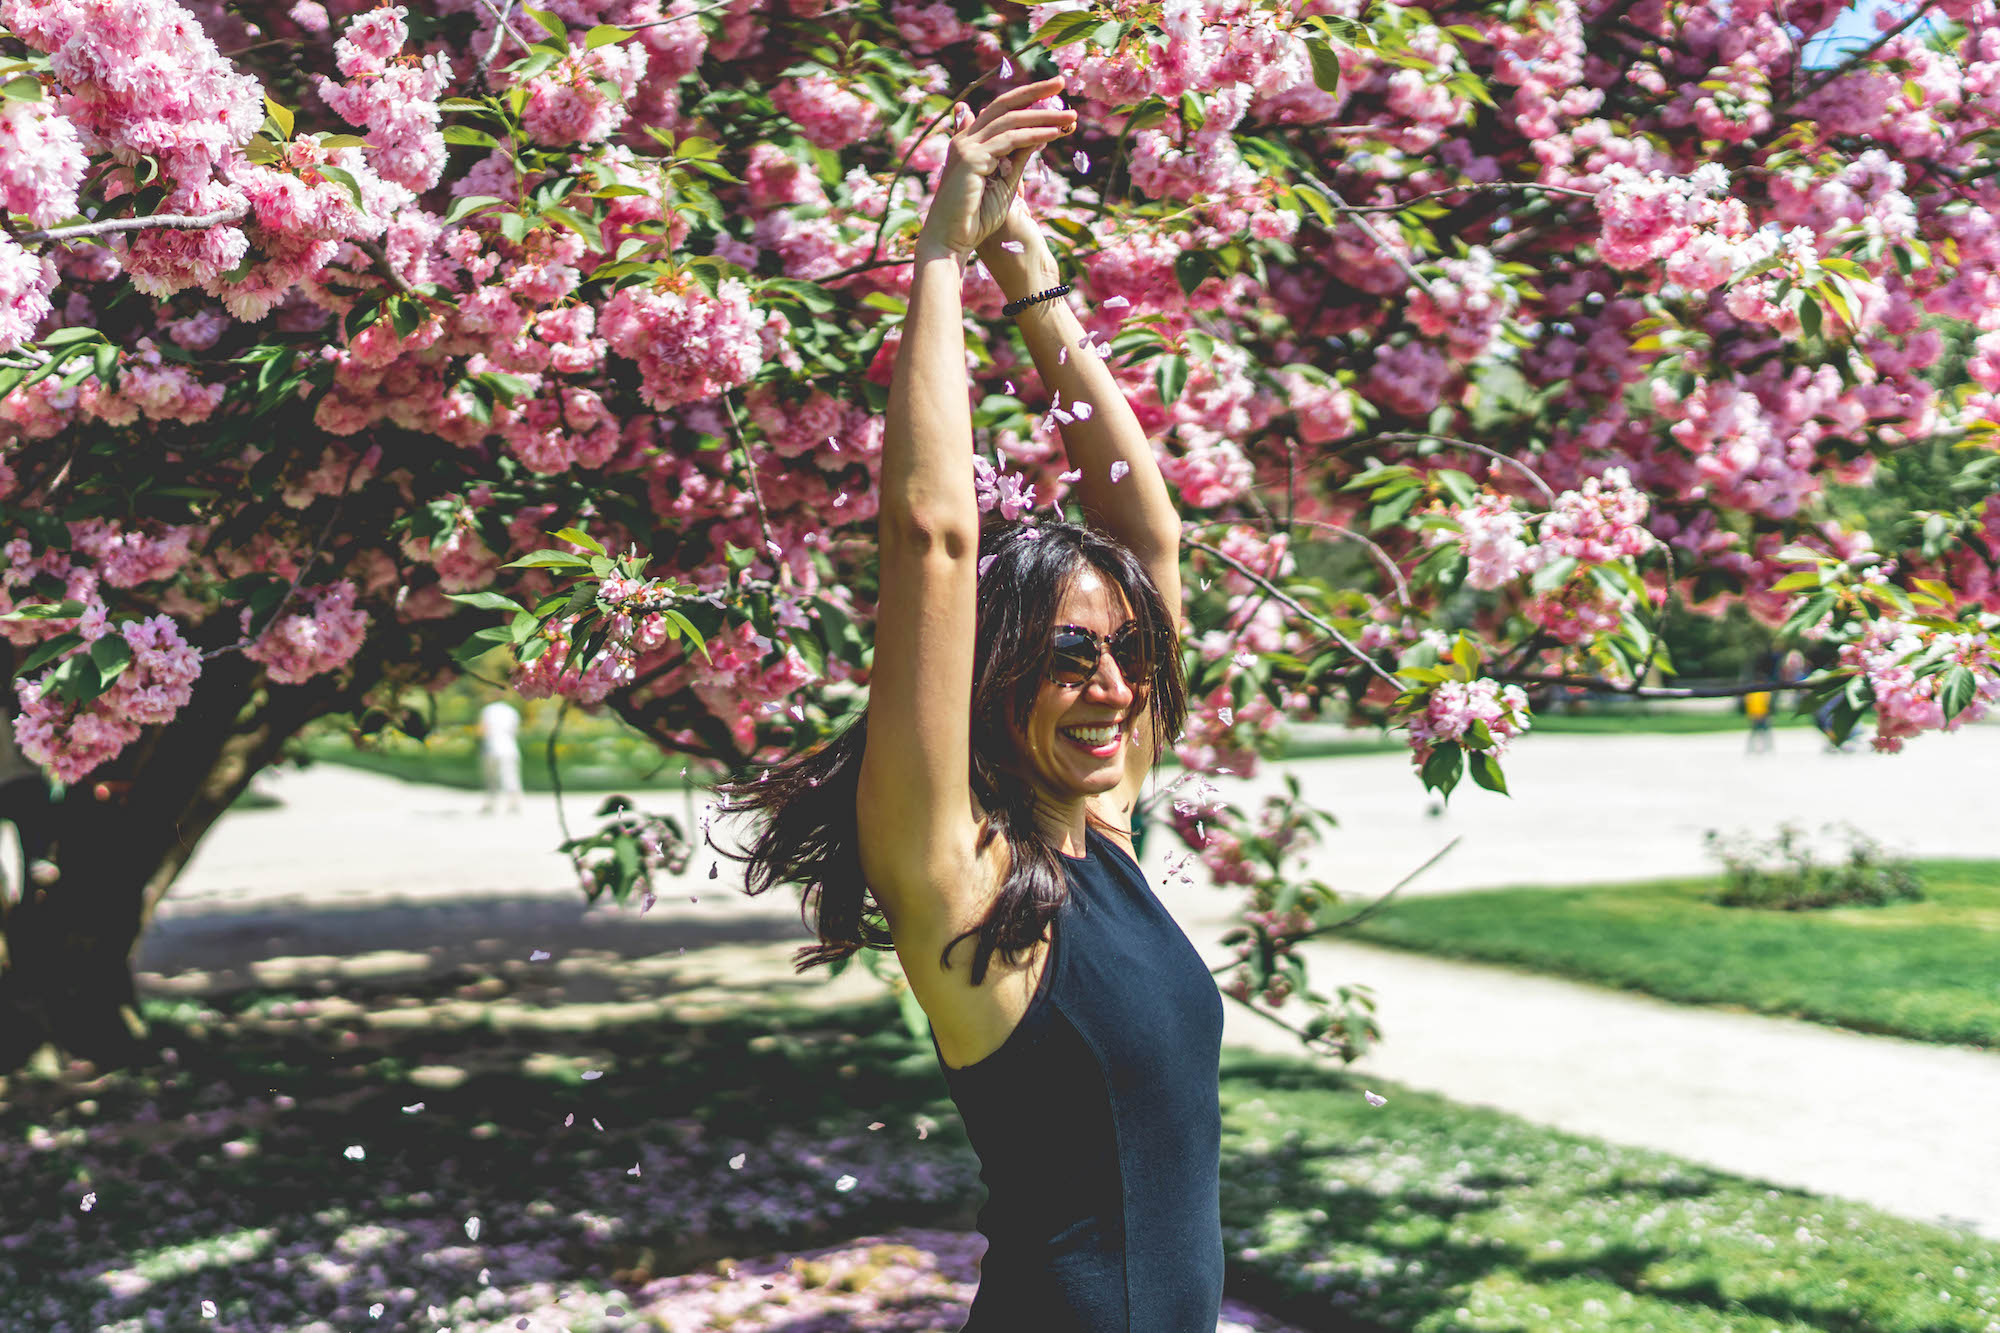 Living in Paris is best in summer when the trees blossom and the city is a wash of pink, which makes you as happy as the woman smiling with her arms up in the air in this picture.